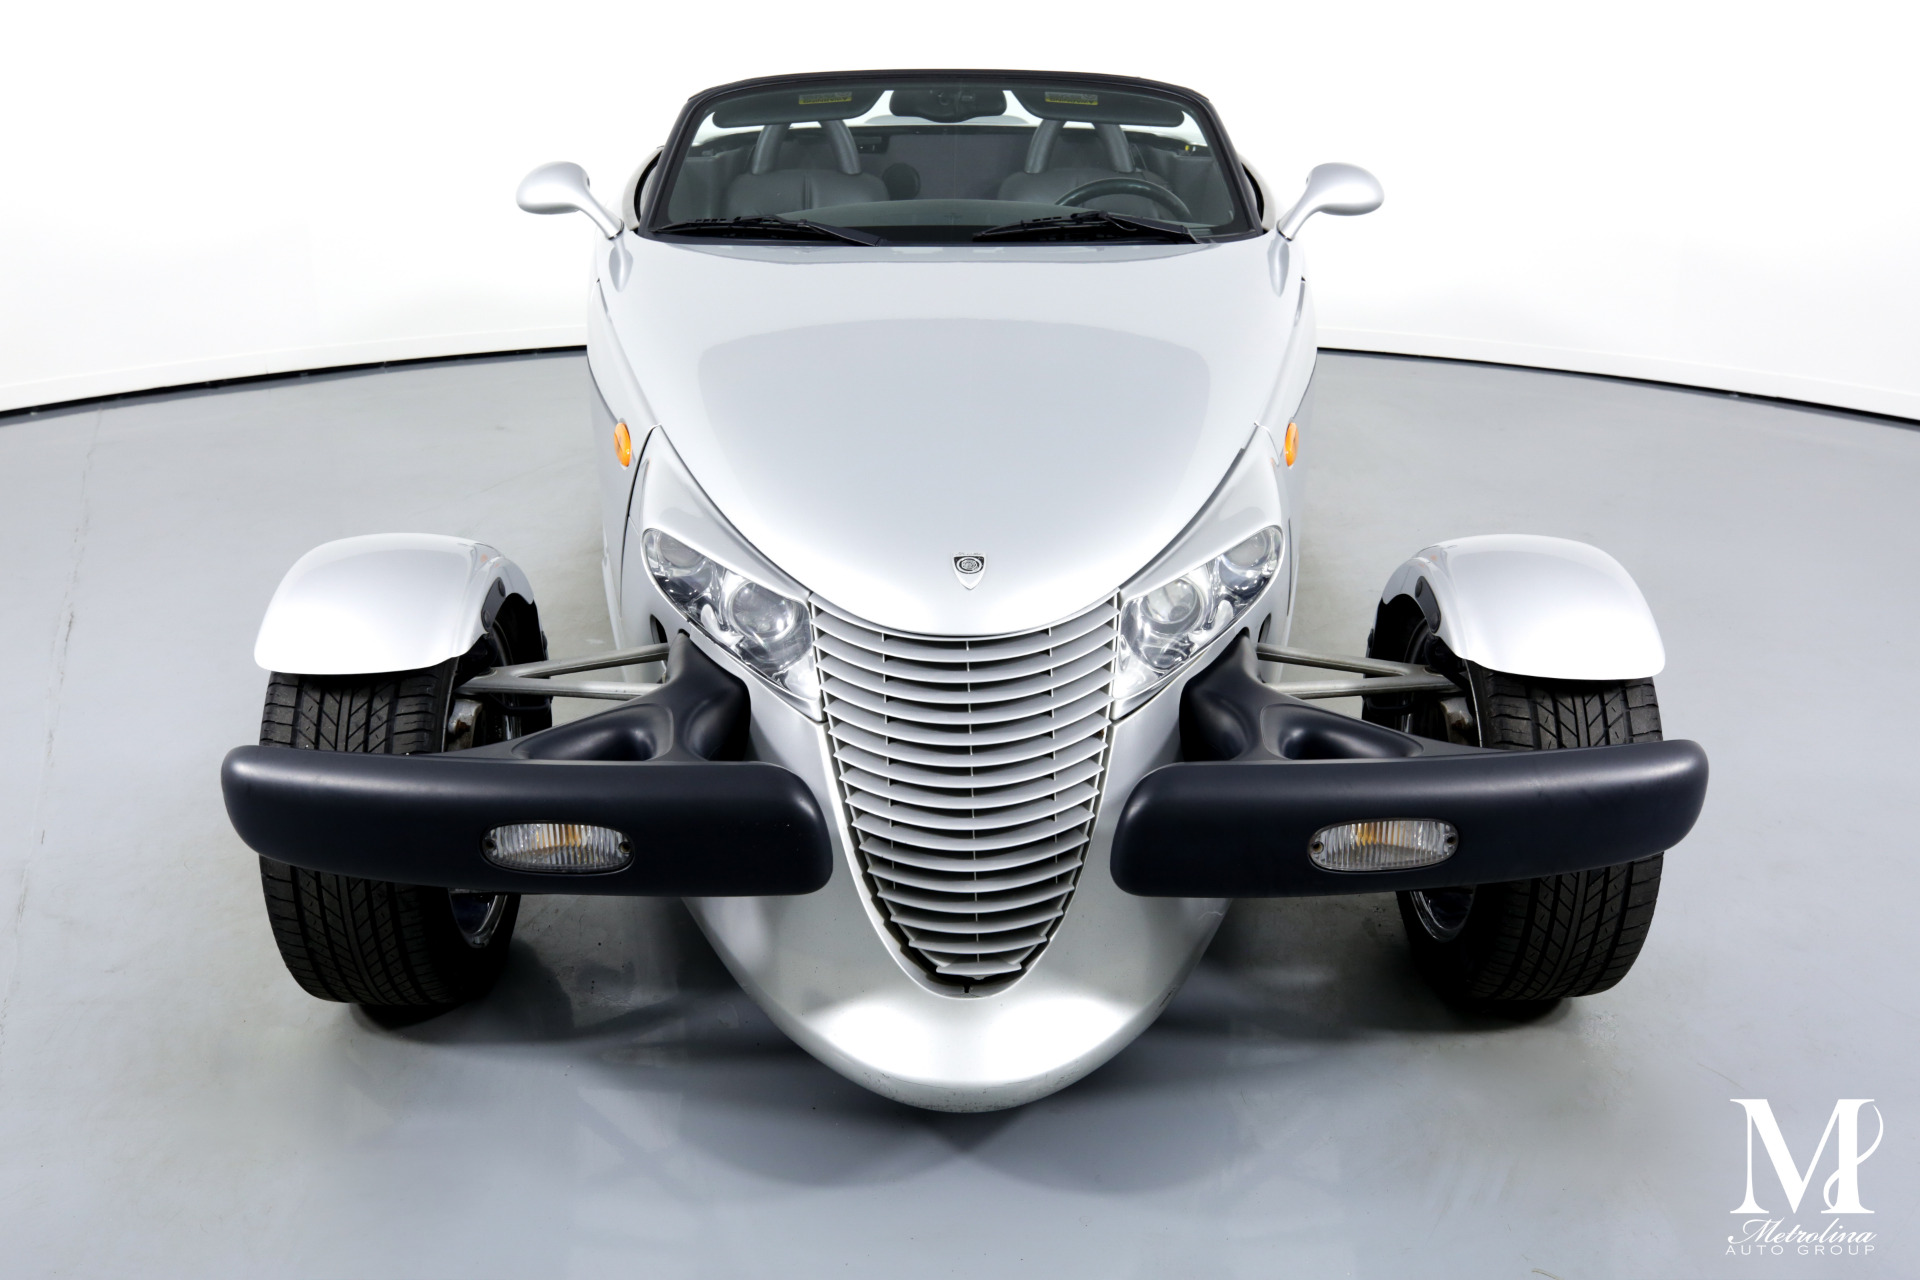 Used 2001 Chrysler Prowler for sale $25,996 at Metrolina Auto Group in Charlotte NC 28217 - 4